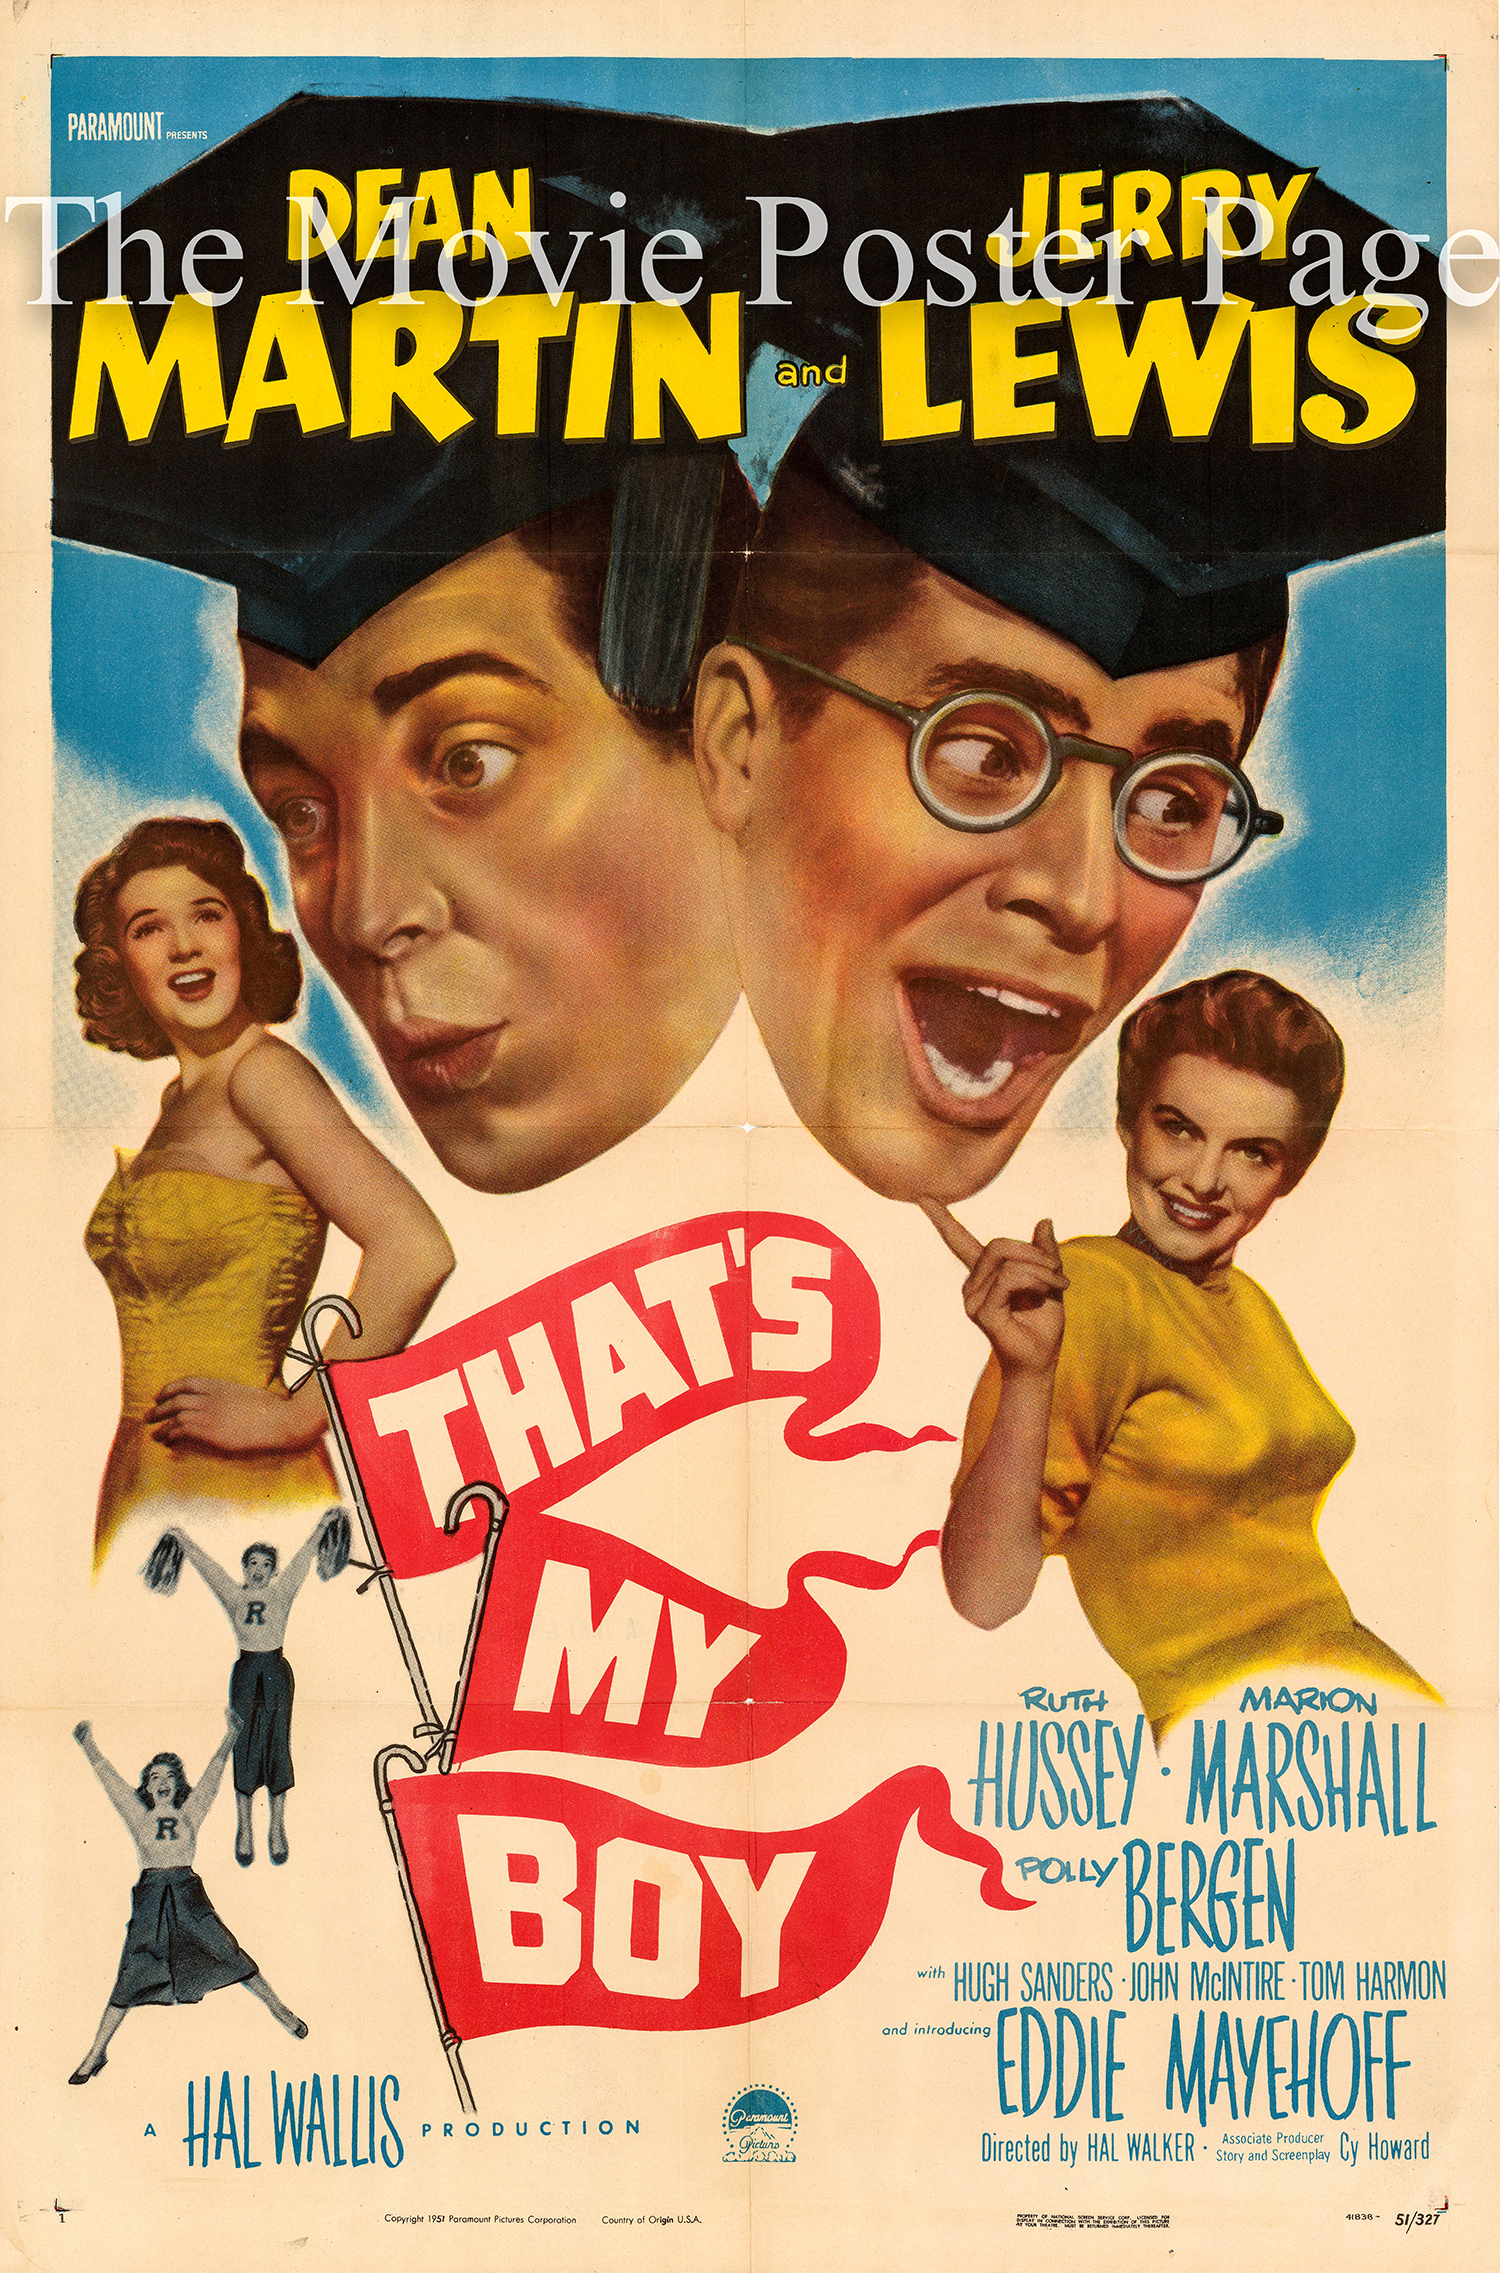 Pictured is a US one-sheet promotional poster for the 1951 Hal Walker film That's My Boy starring Dean Martin and Jerry Lewis.